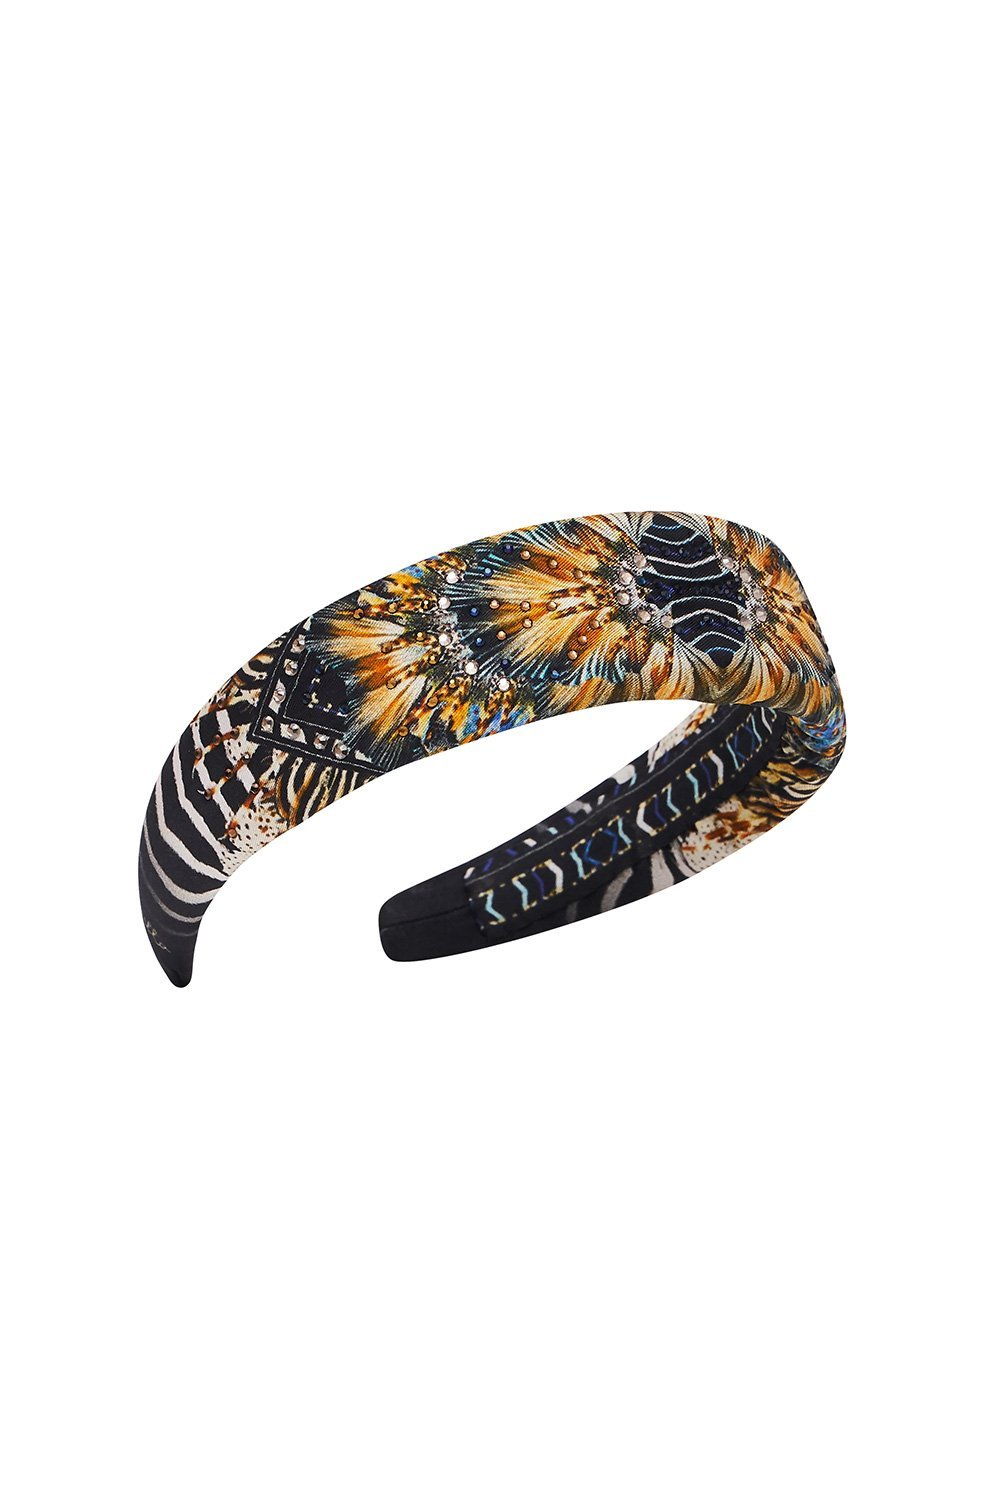 PRINTED HEADBAND LOST PARADISE